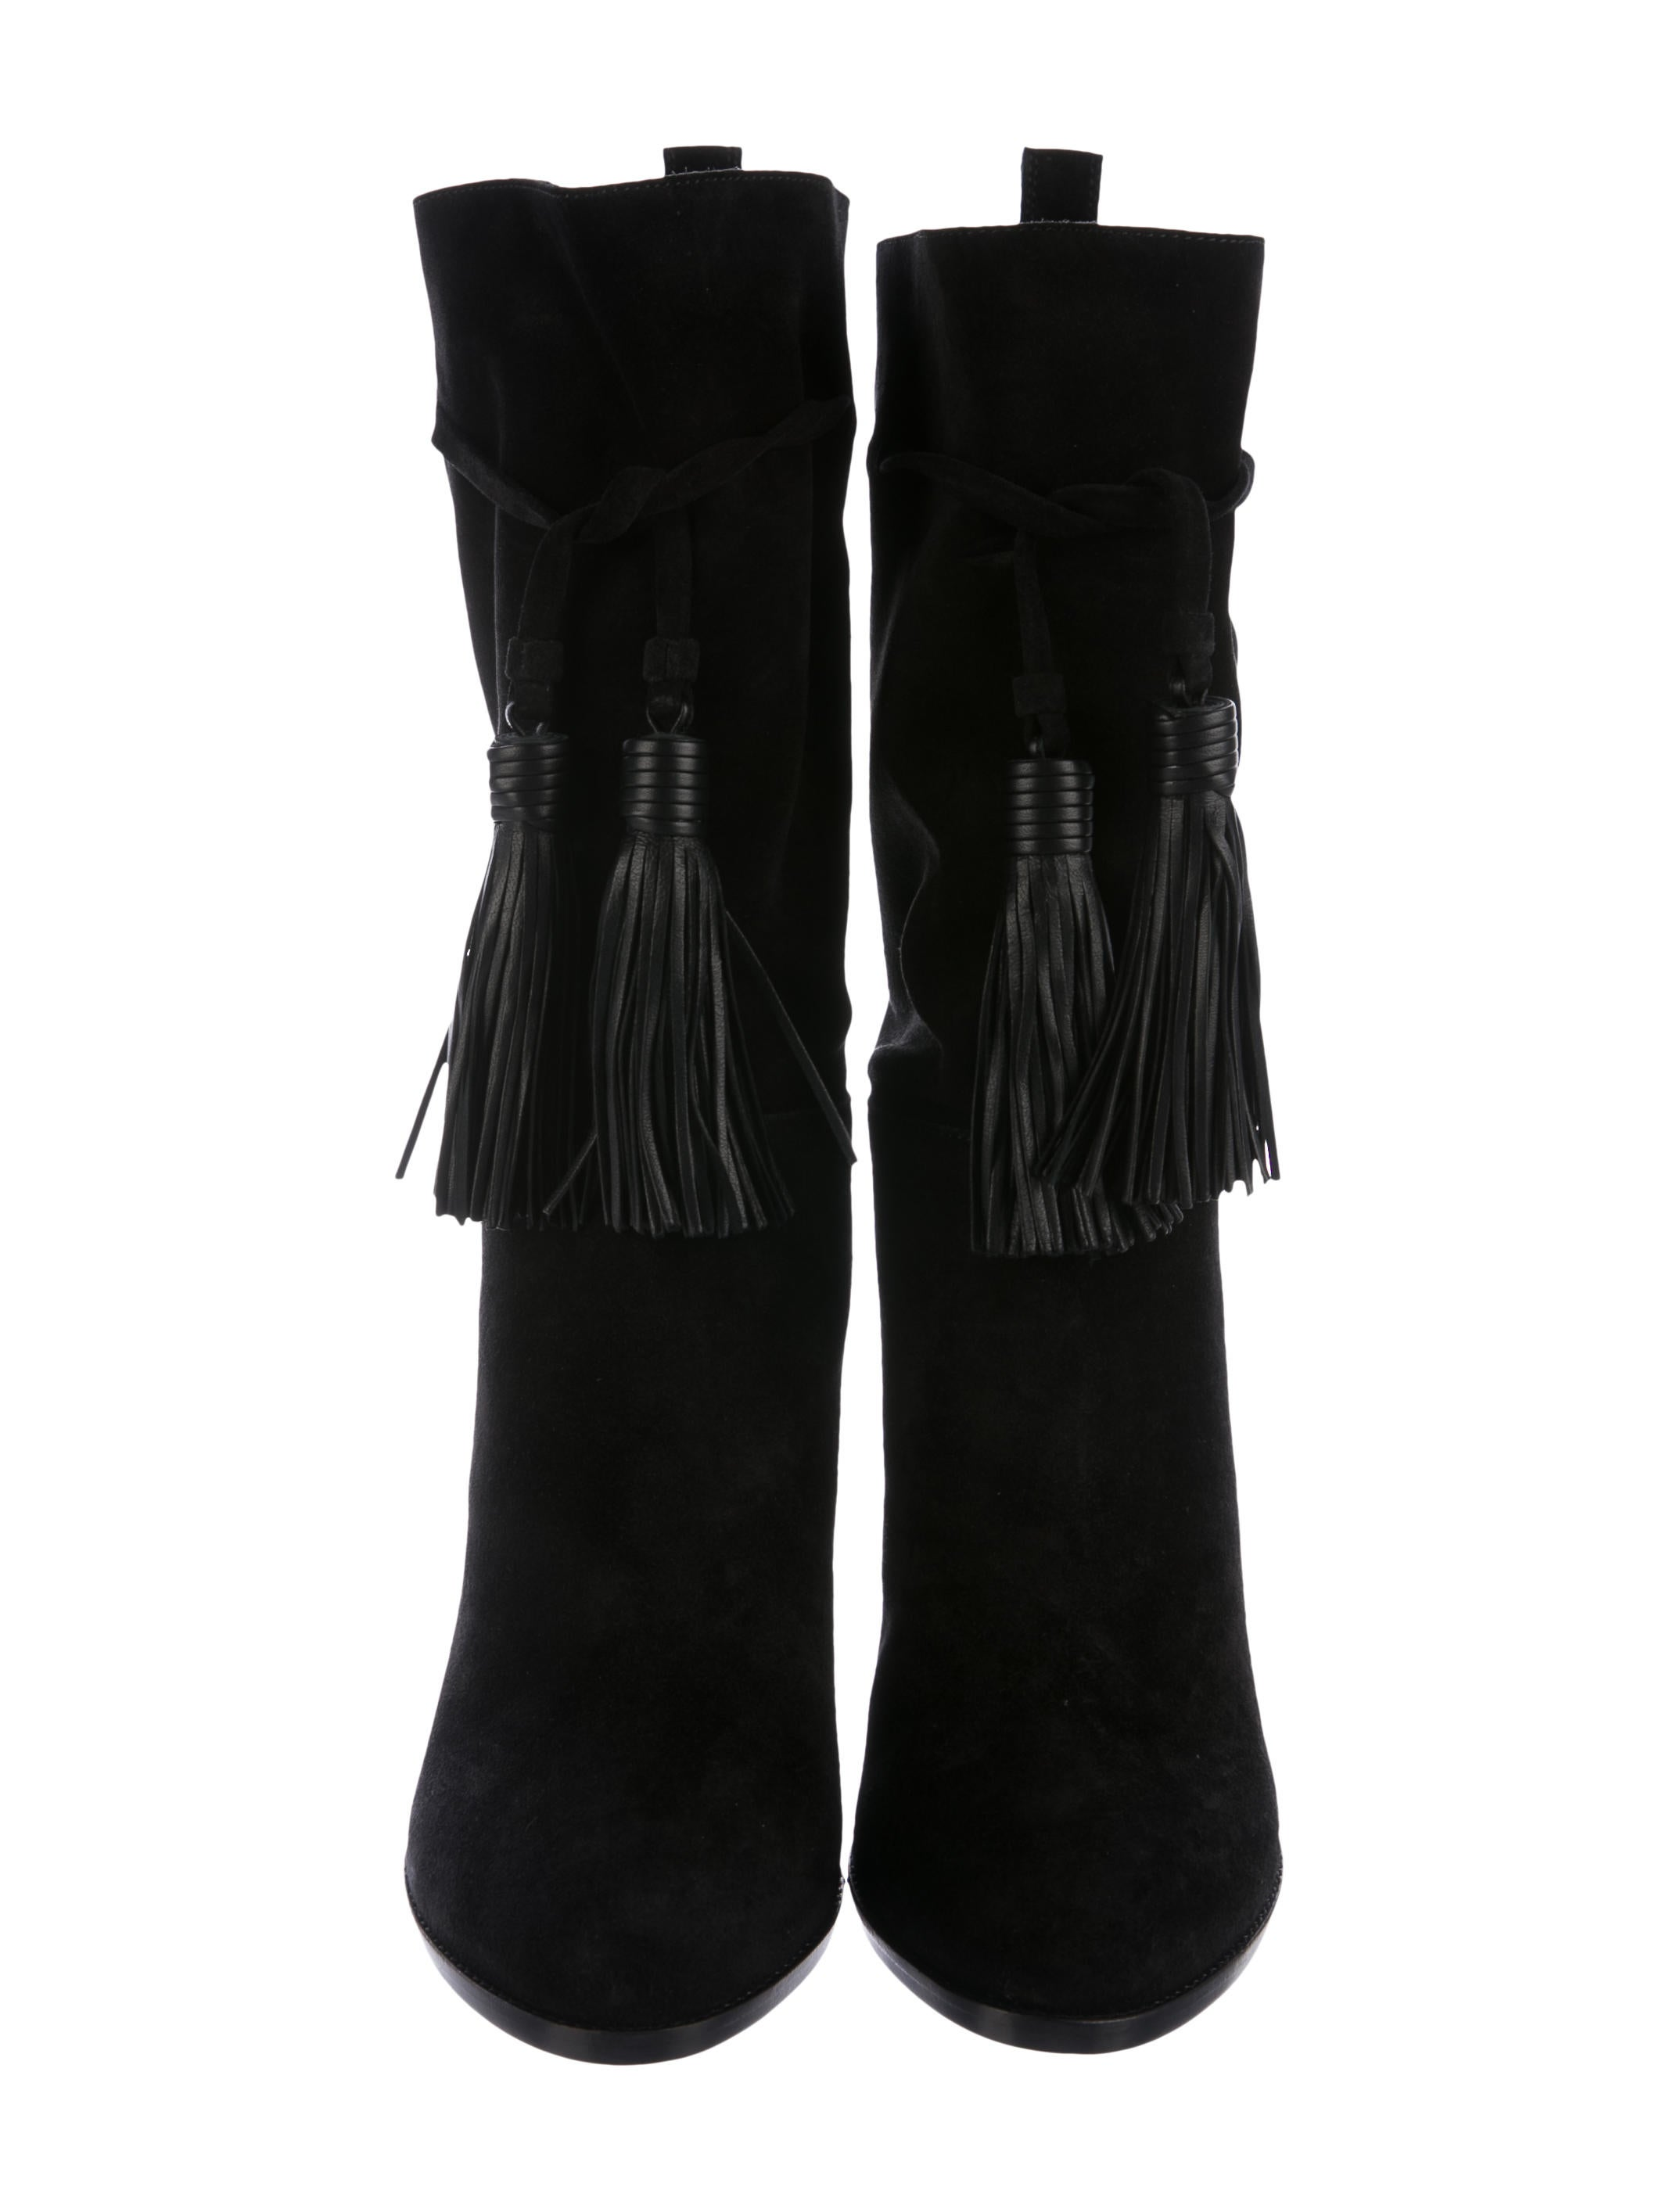 Lanvin Tassel-Accented Suede Boots w/ Tags looking for for sale UBexV74A